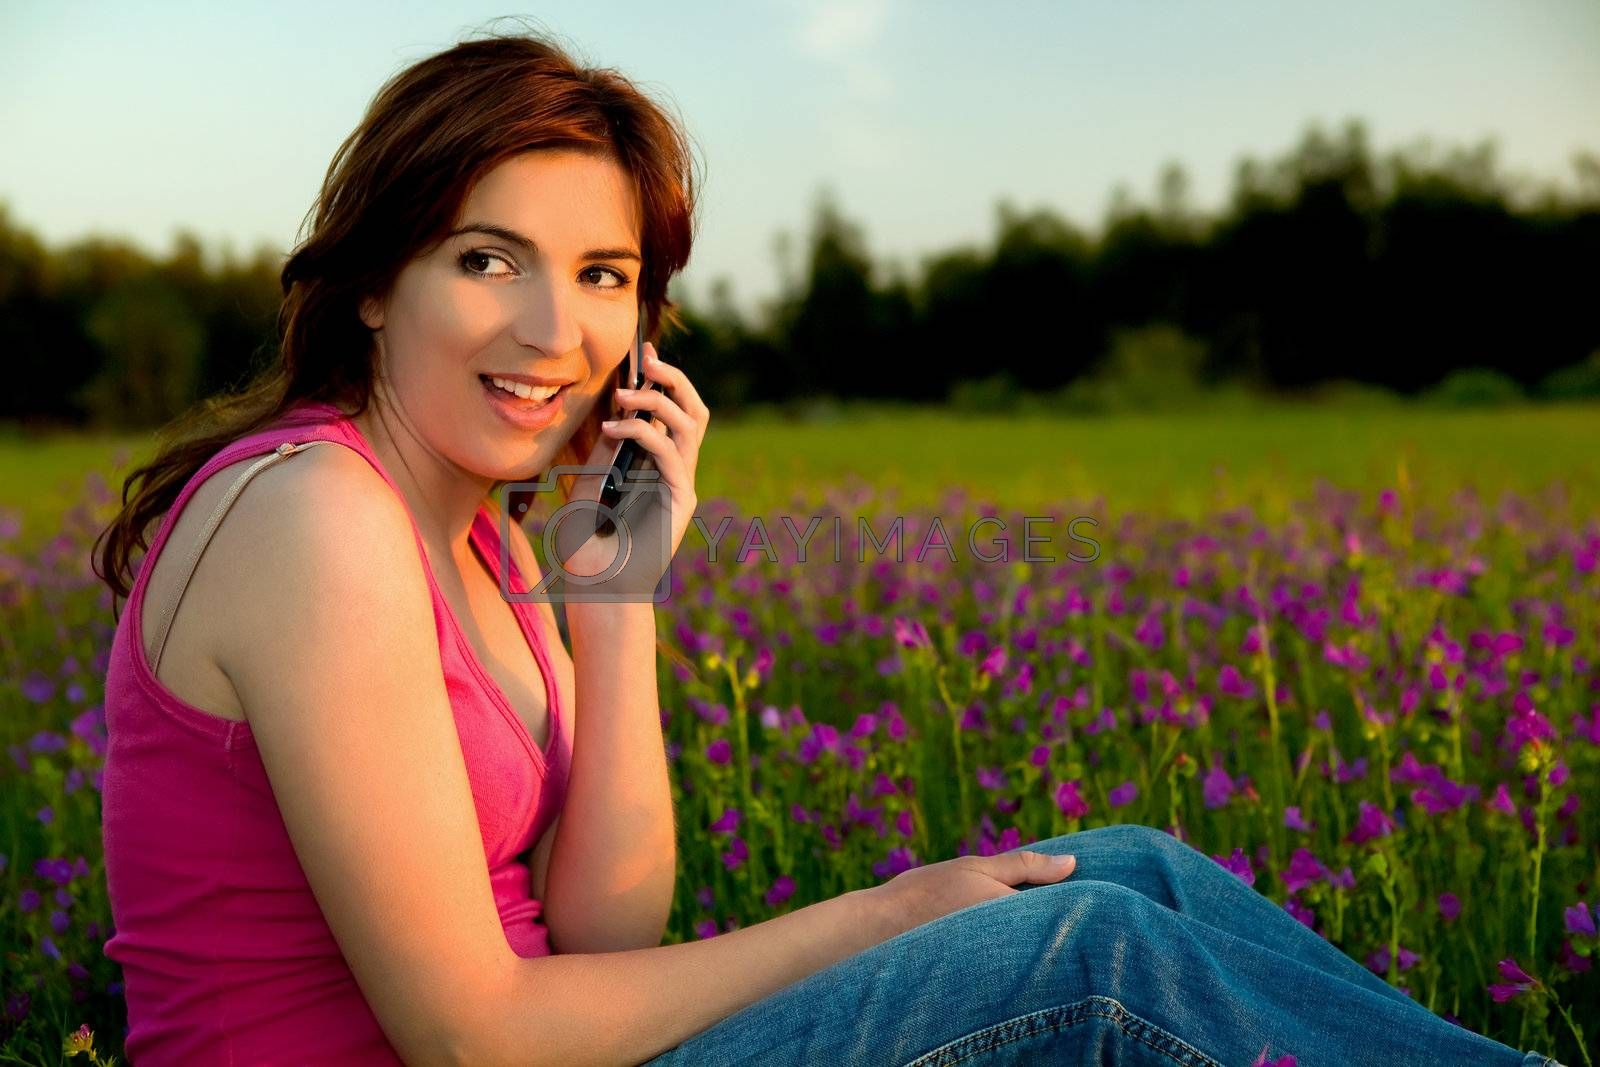 Royalty free image of Girl talking on cellphone by Iko